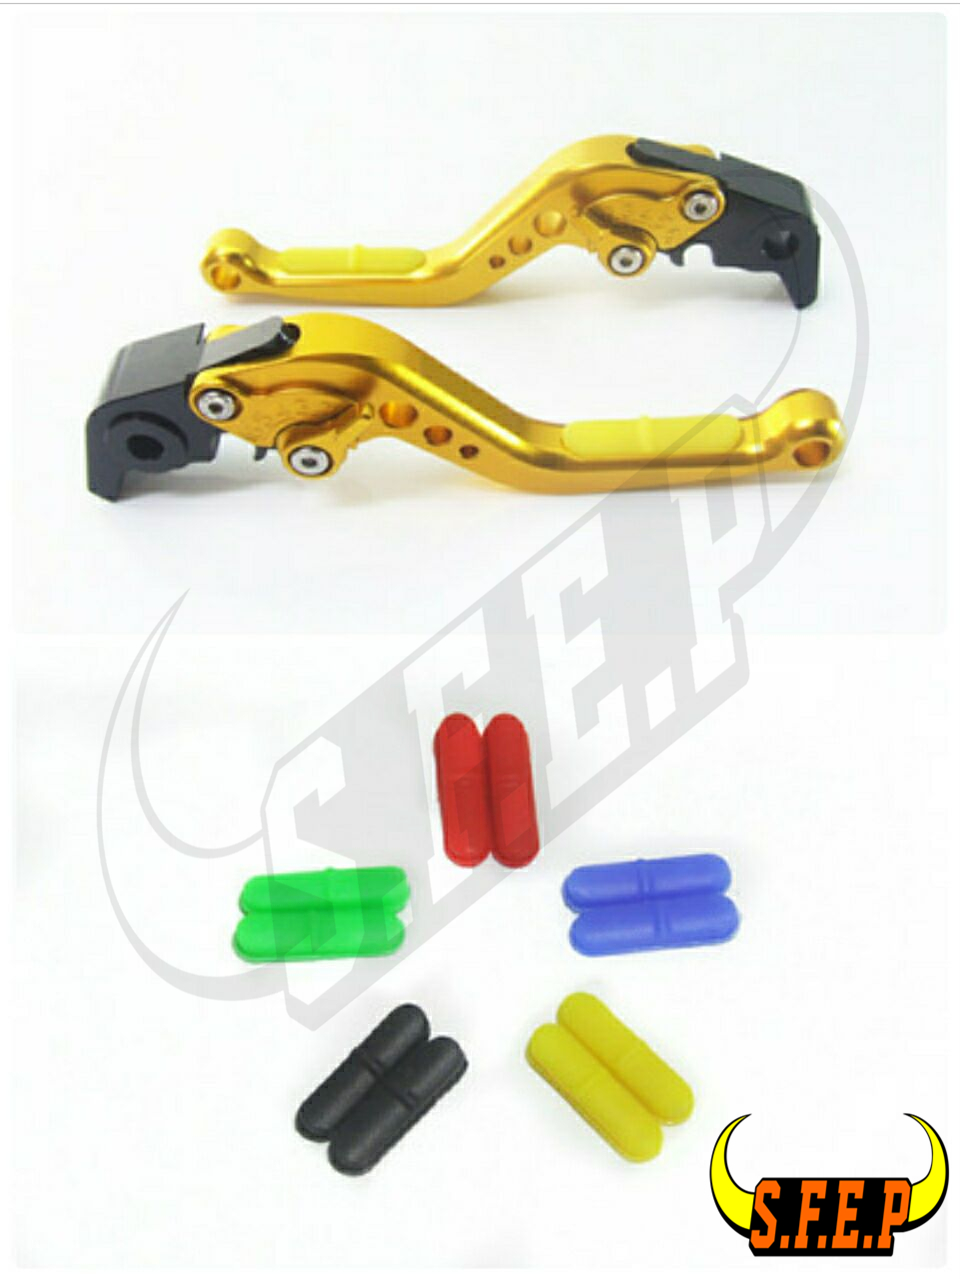 CNC Adjustable Motorcycle Brake and Clutch Levers with Anti-Slip For Ducati Scrambler(all except Cafe Racer) 2015-2016